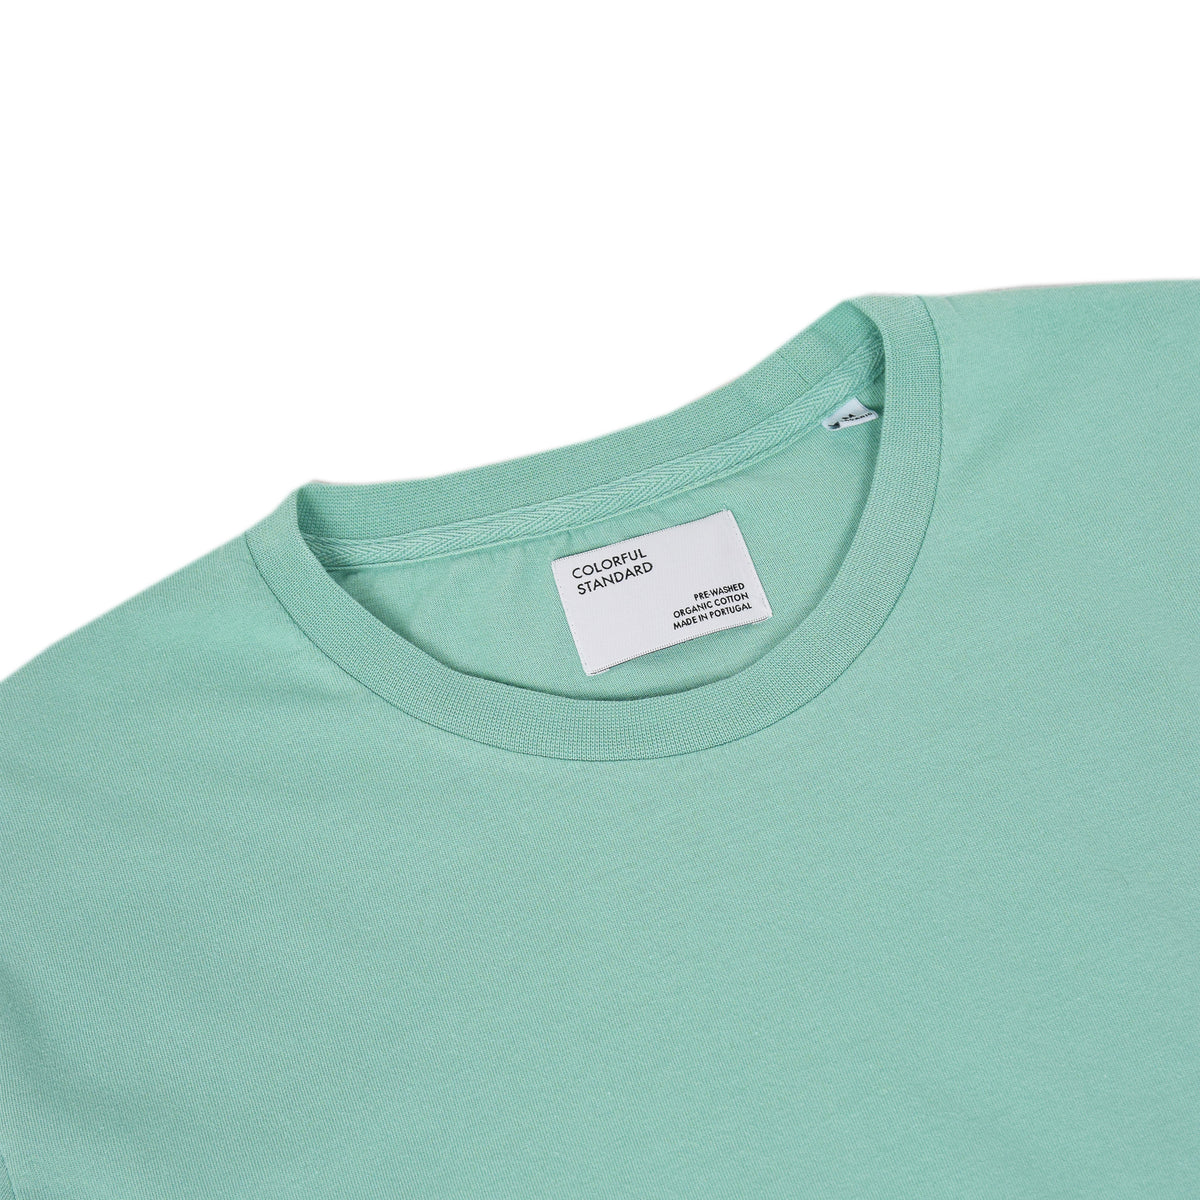 Colorful Standard Organic Cotton Tee Faded Mint label